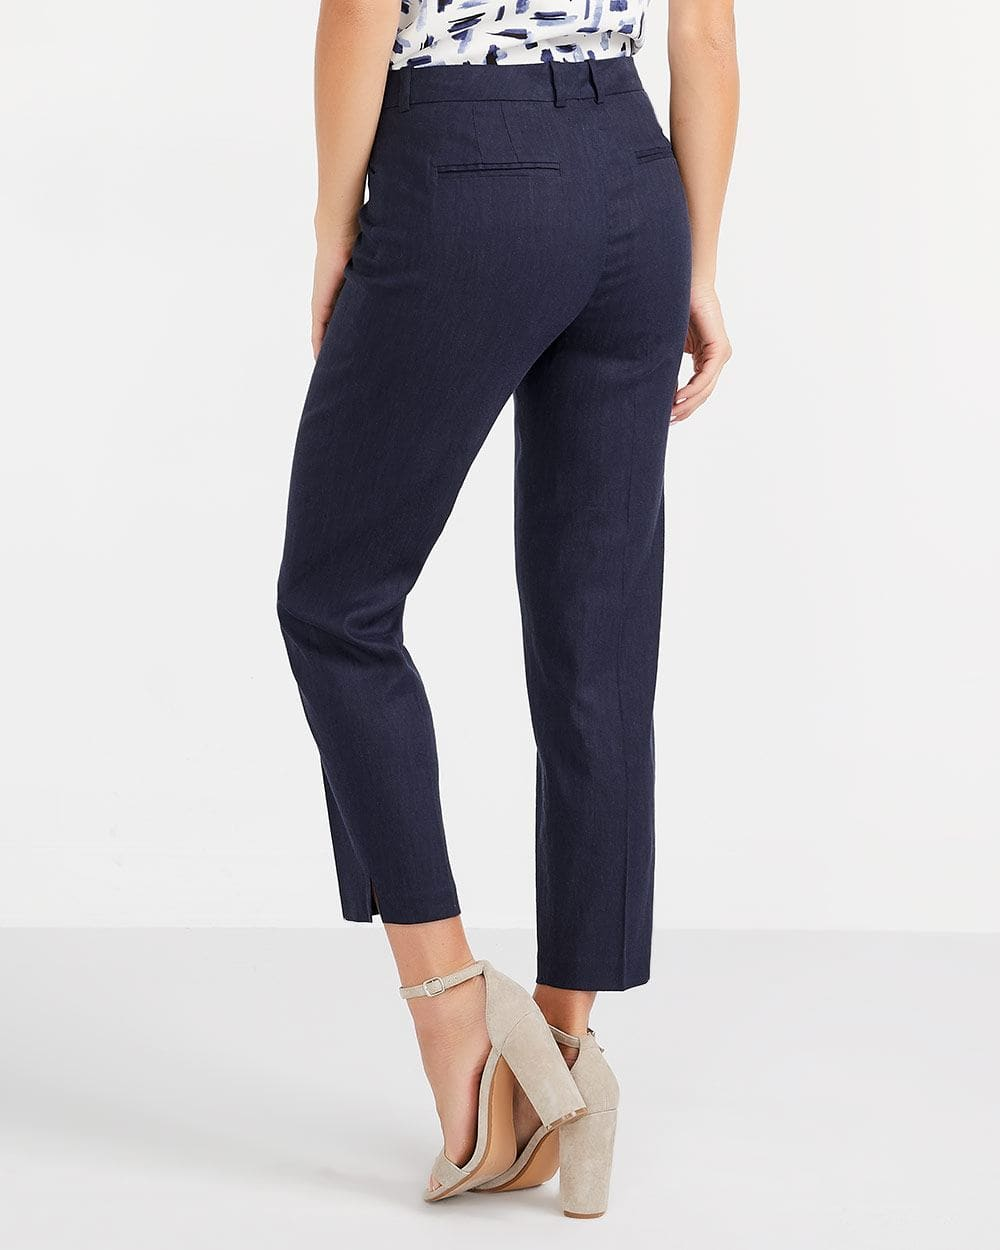 Willow & Thread Linen Blend Ankle Pants